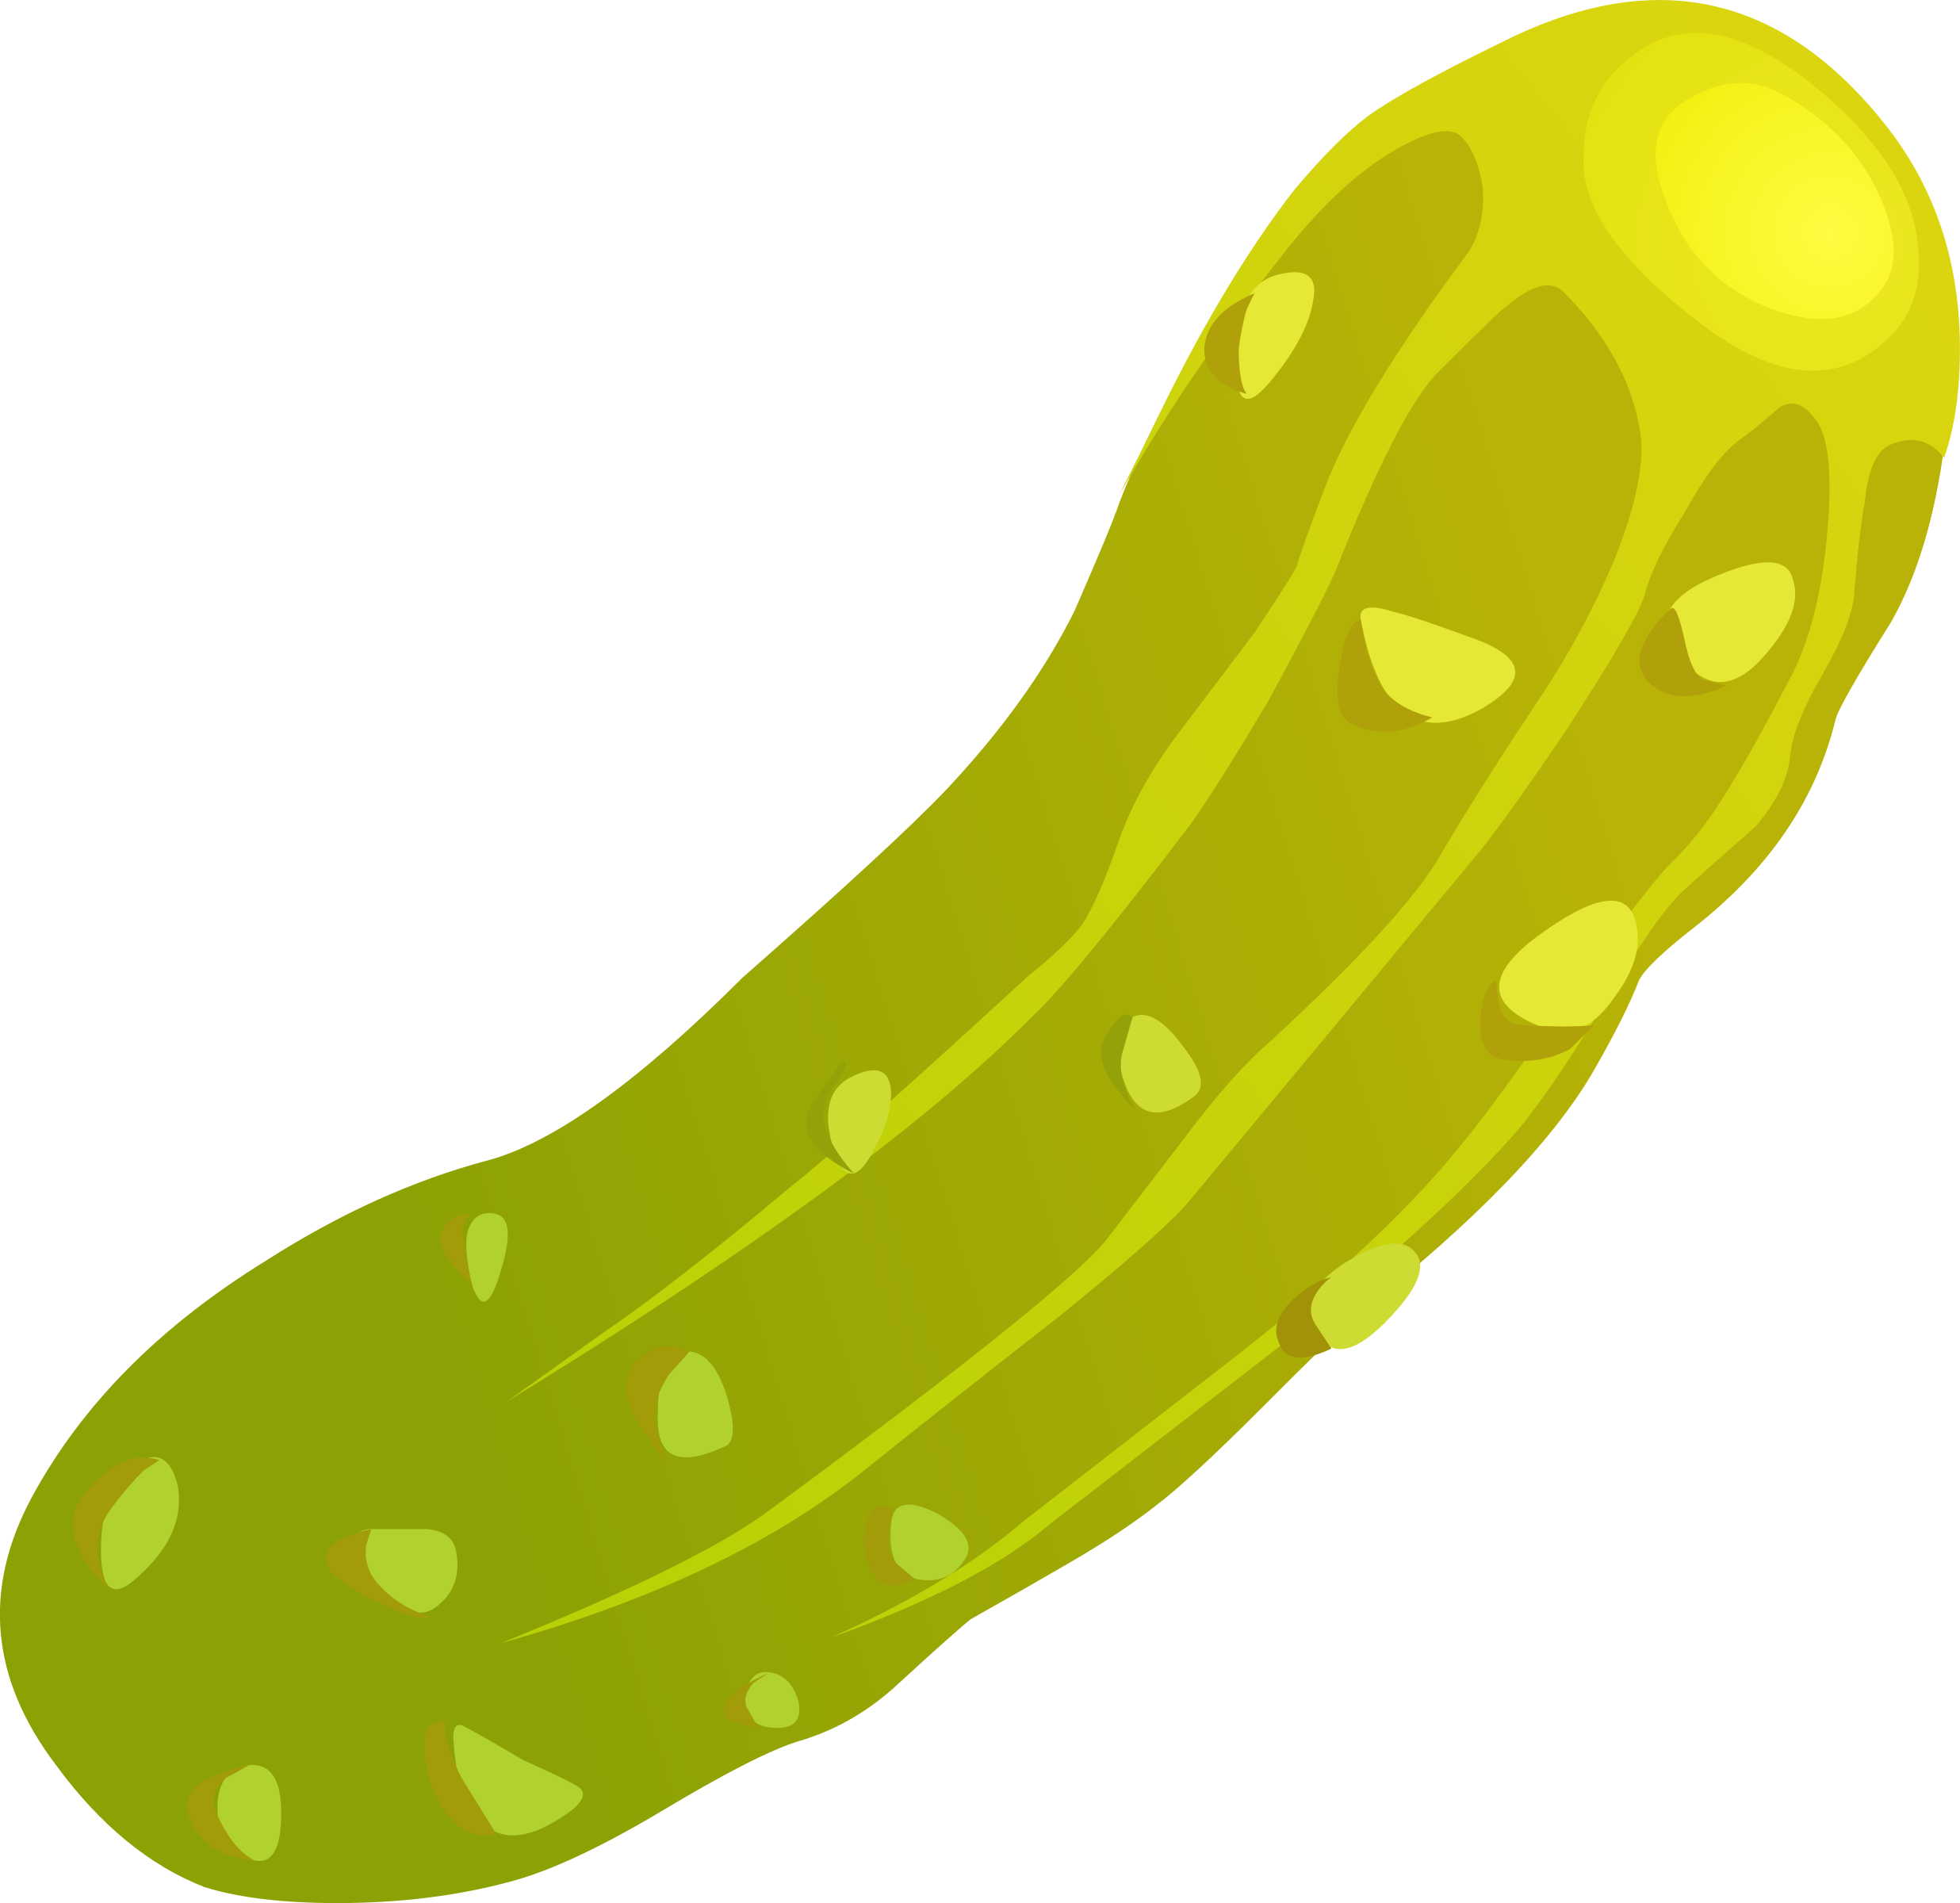 Glitch clipart transparent Clipart Pickle Food (PNG) BIG